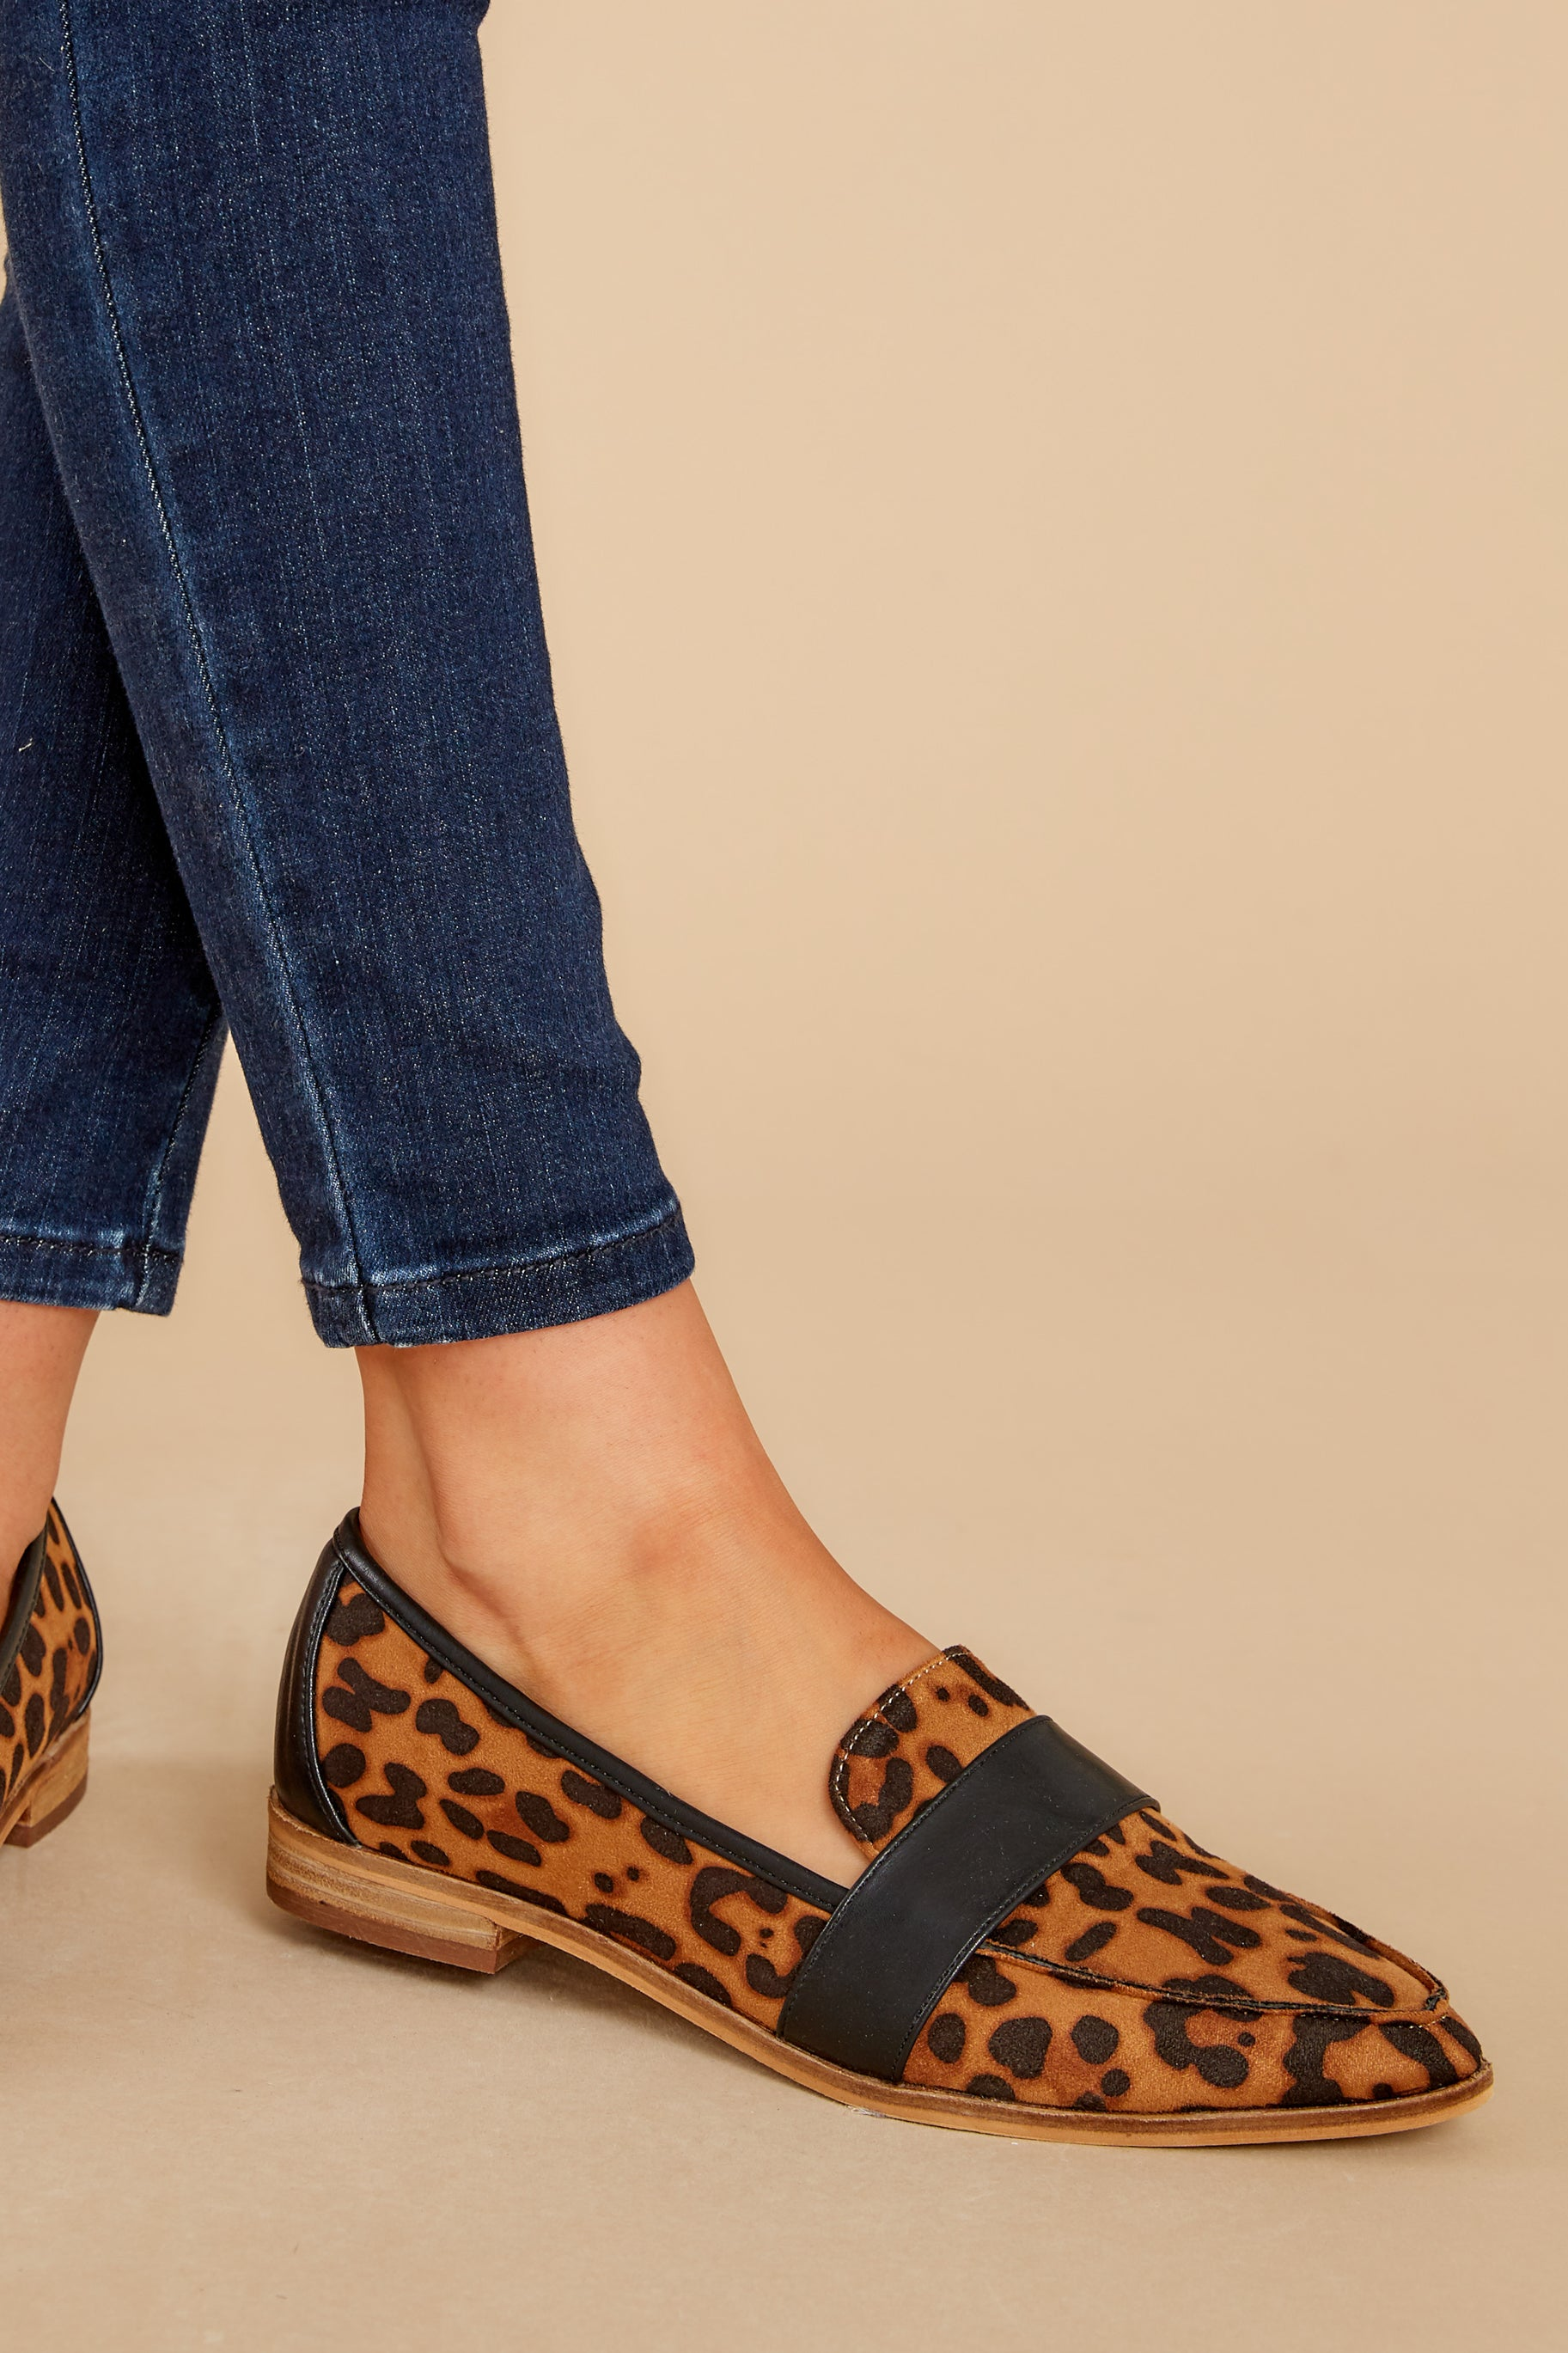 1 Second Glances Leopard Loafers at reddress.com